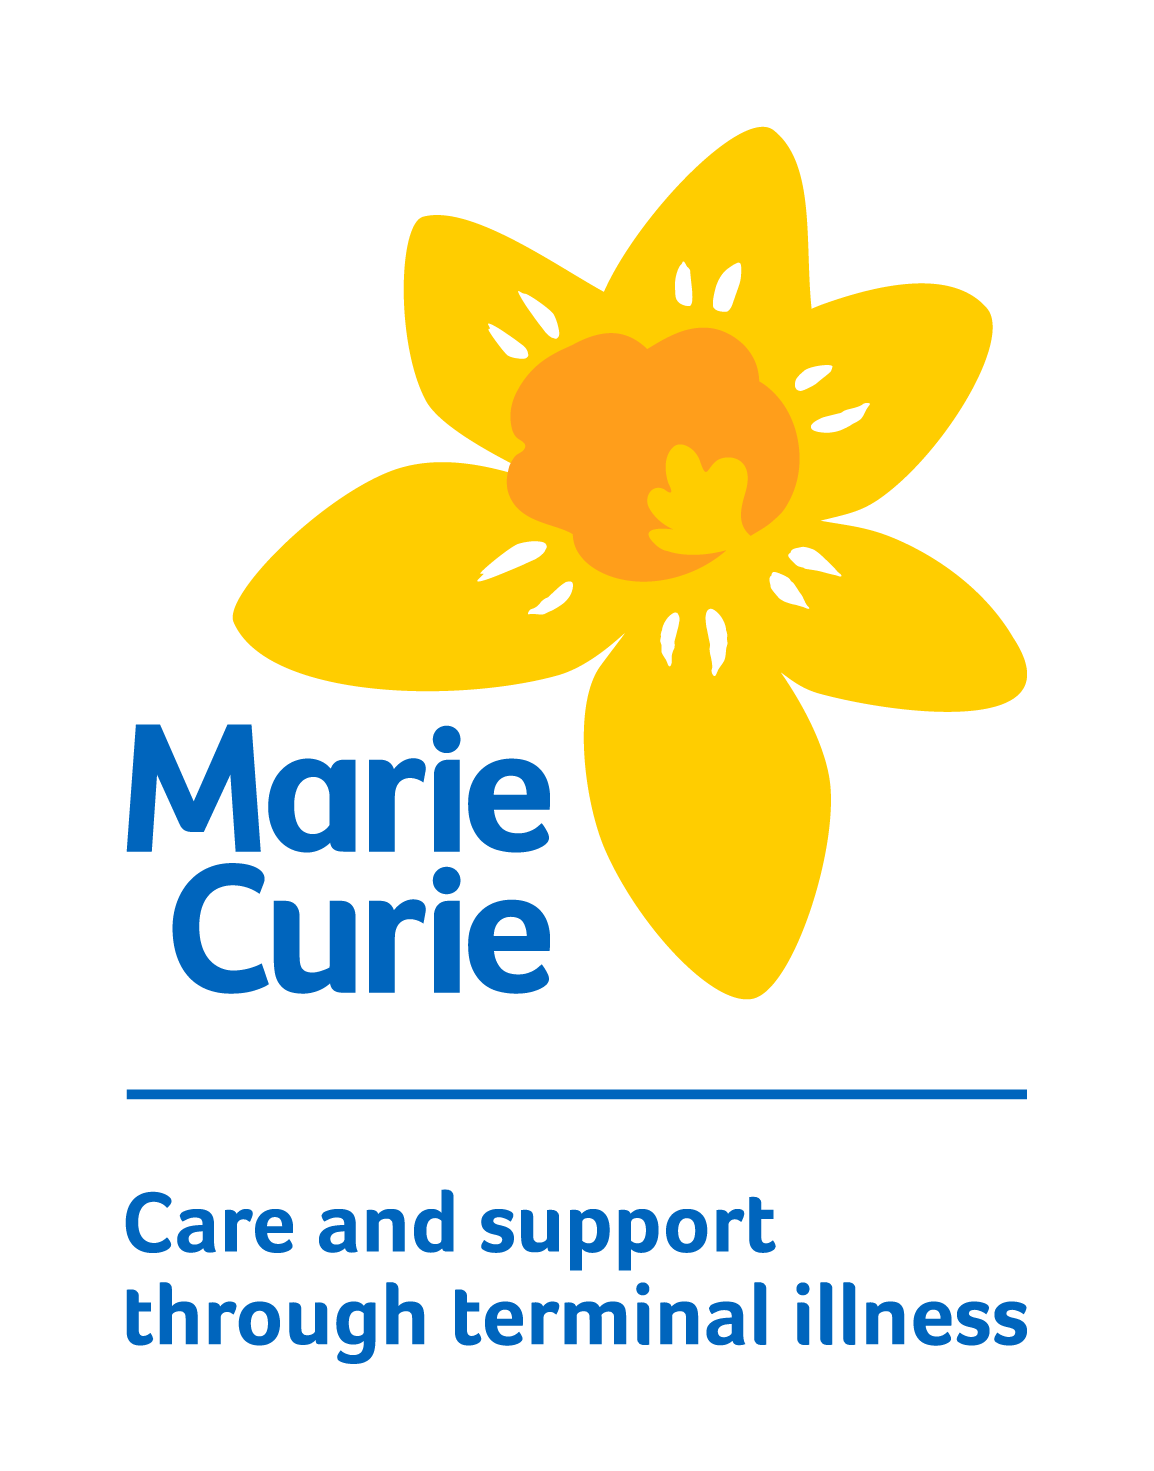 marie-curie-logo.png